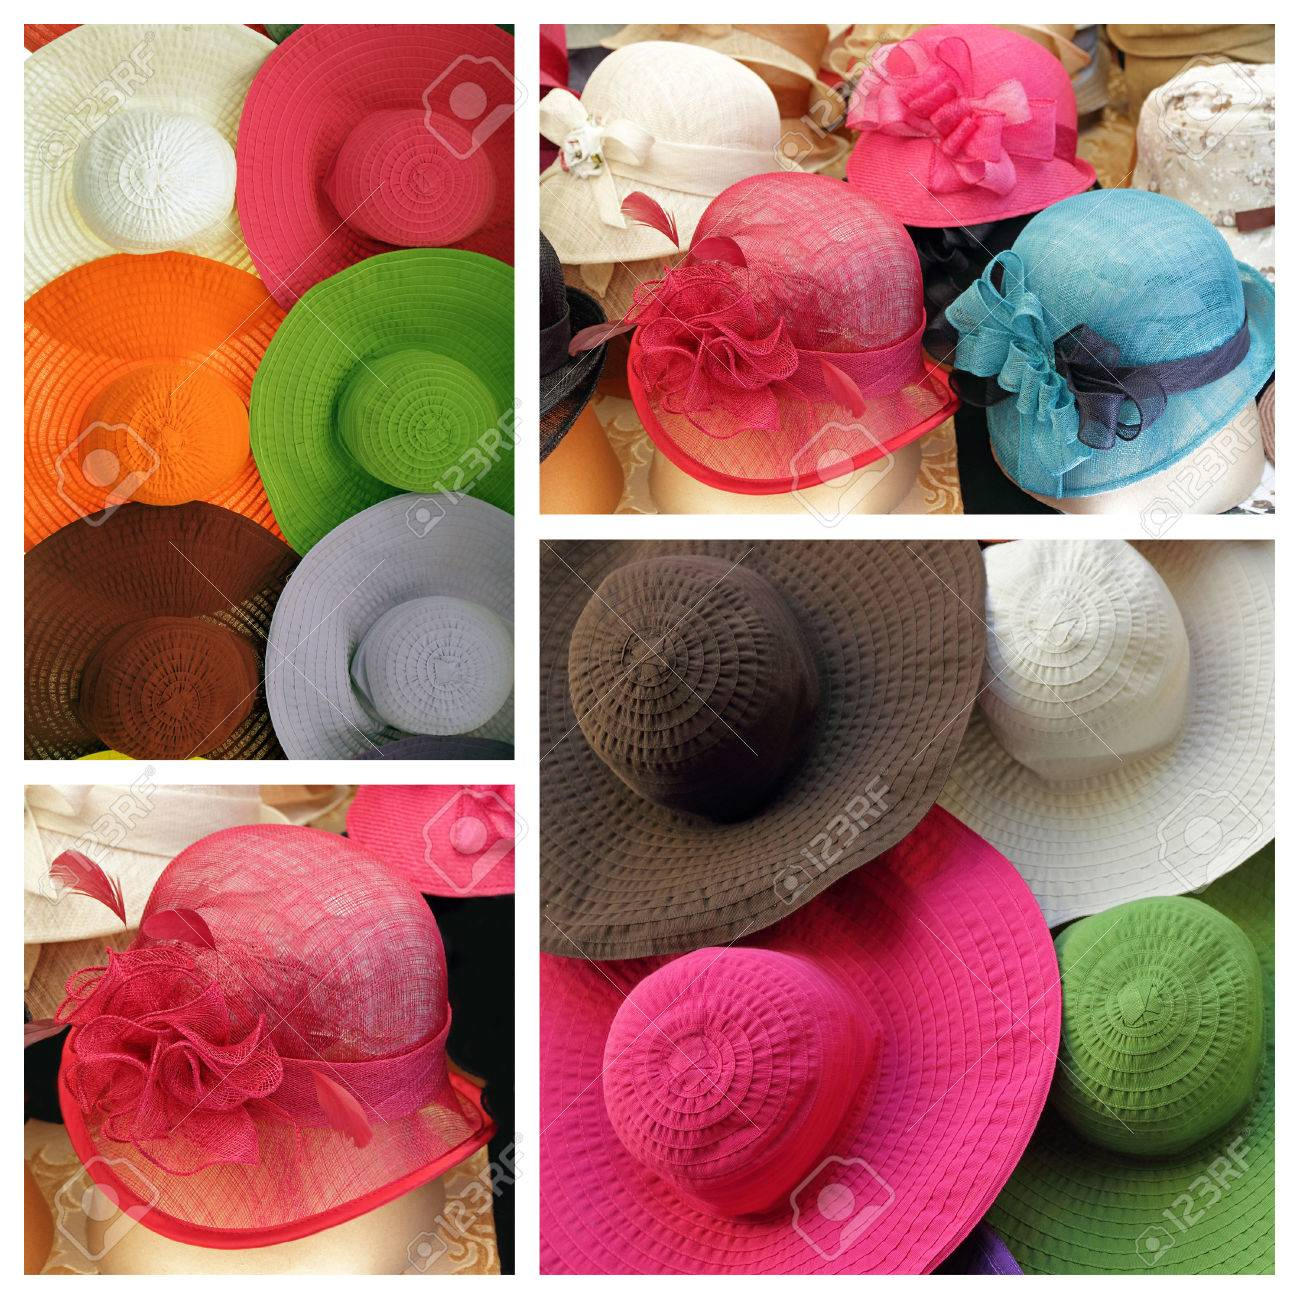 4c2885a948 Colorful Elegant Summer Women Hats Collage